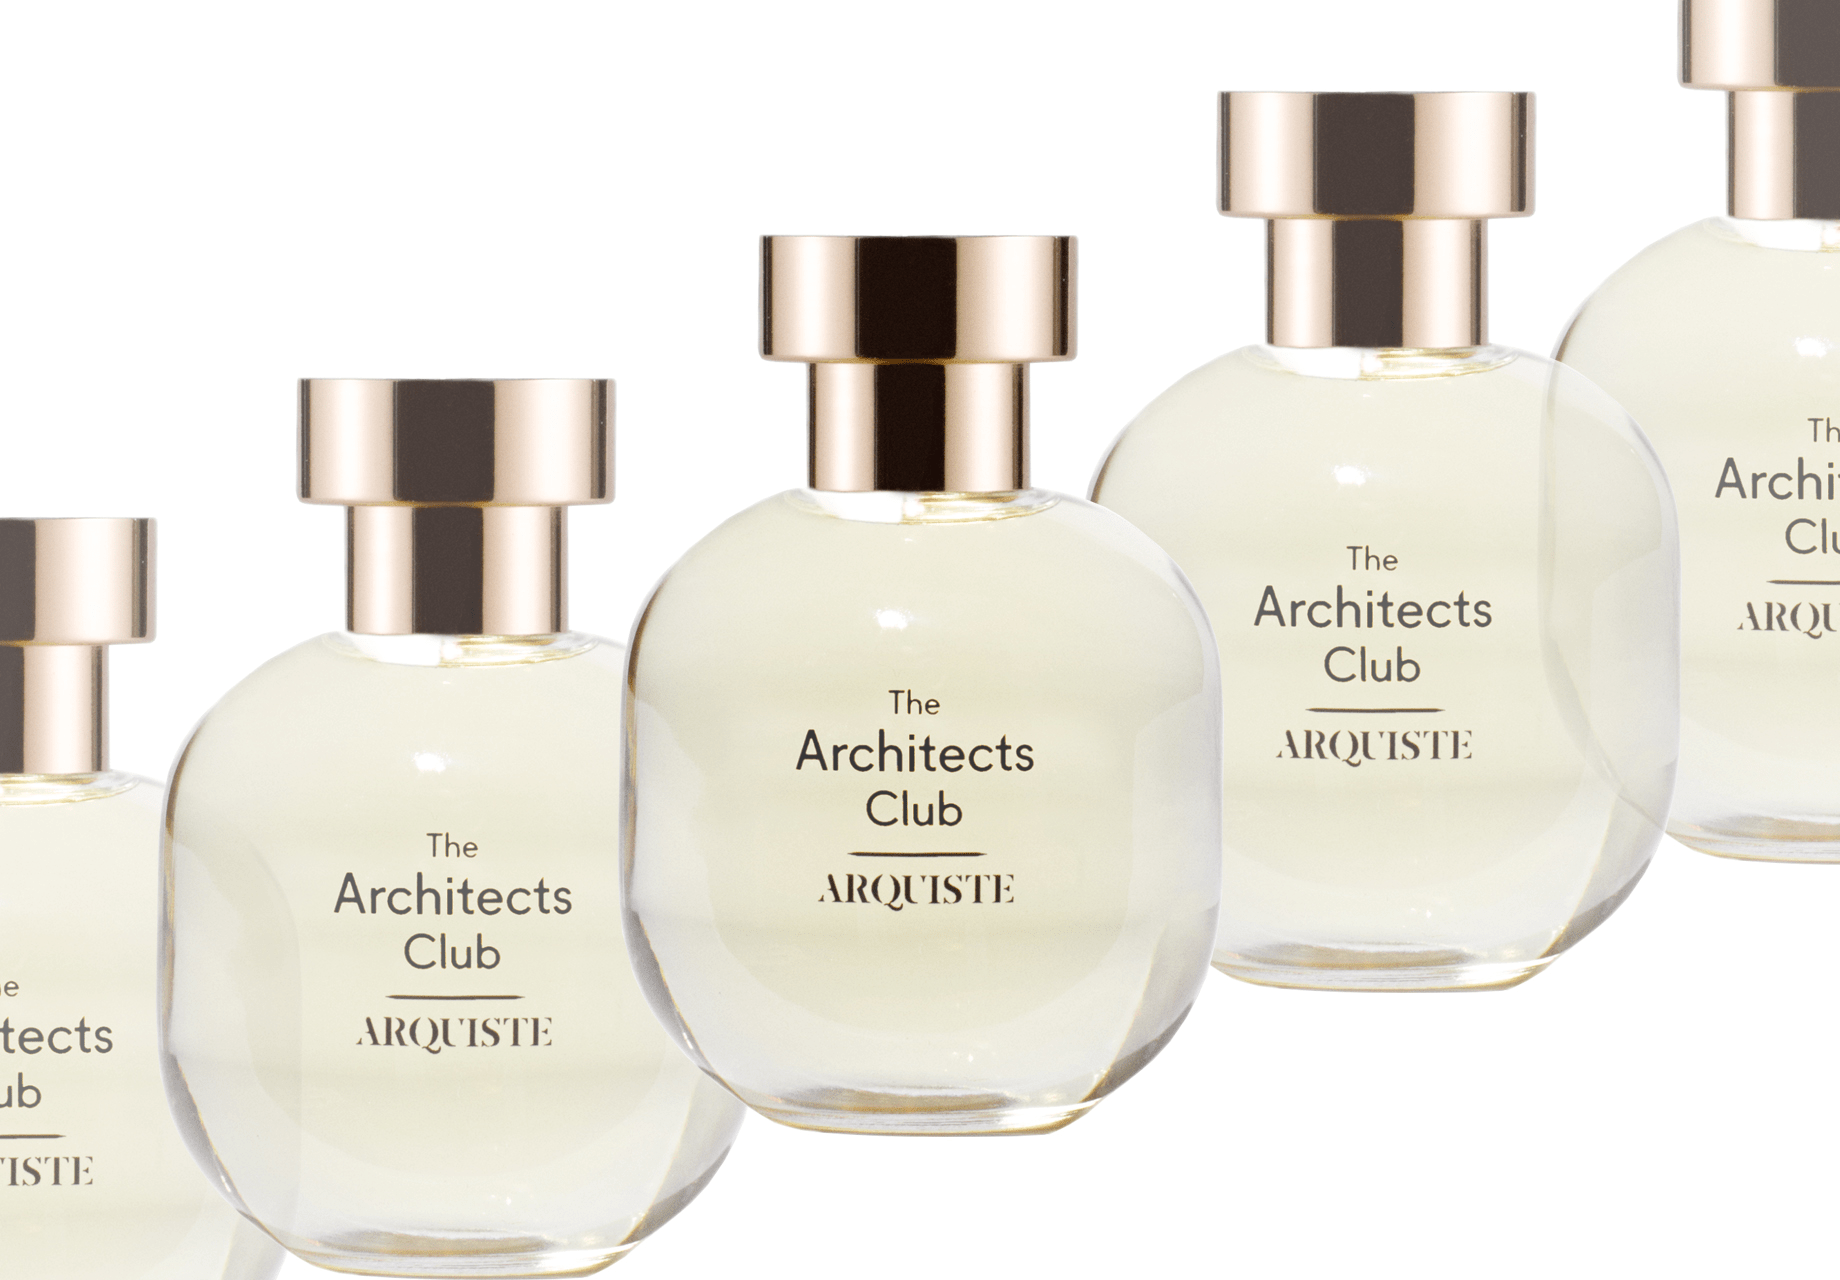 Fabulous Friday Fragrance: The Architects Club by Arquiste